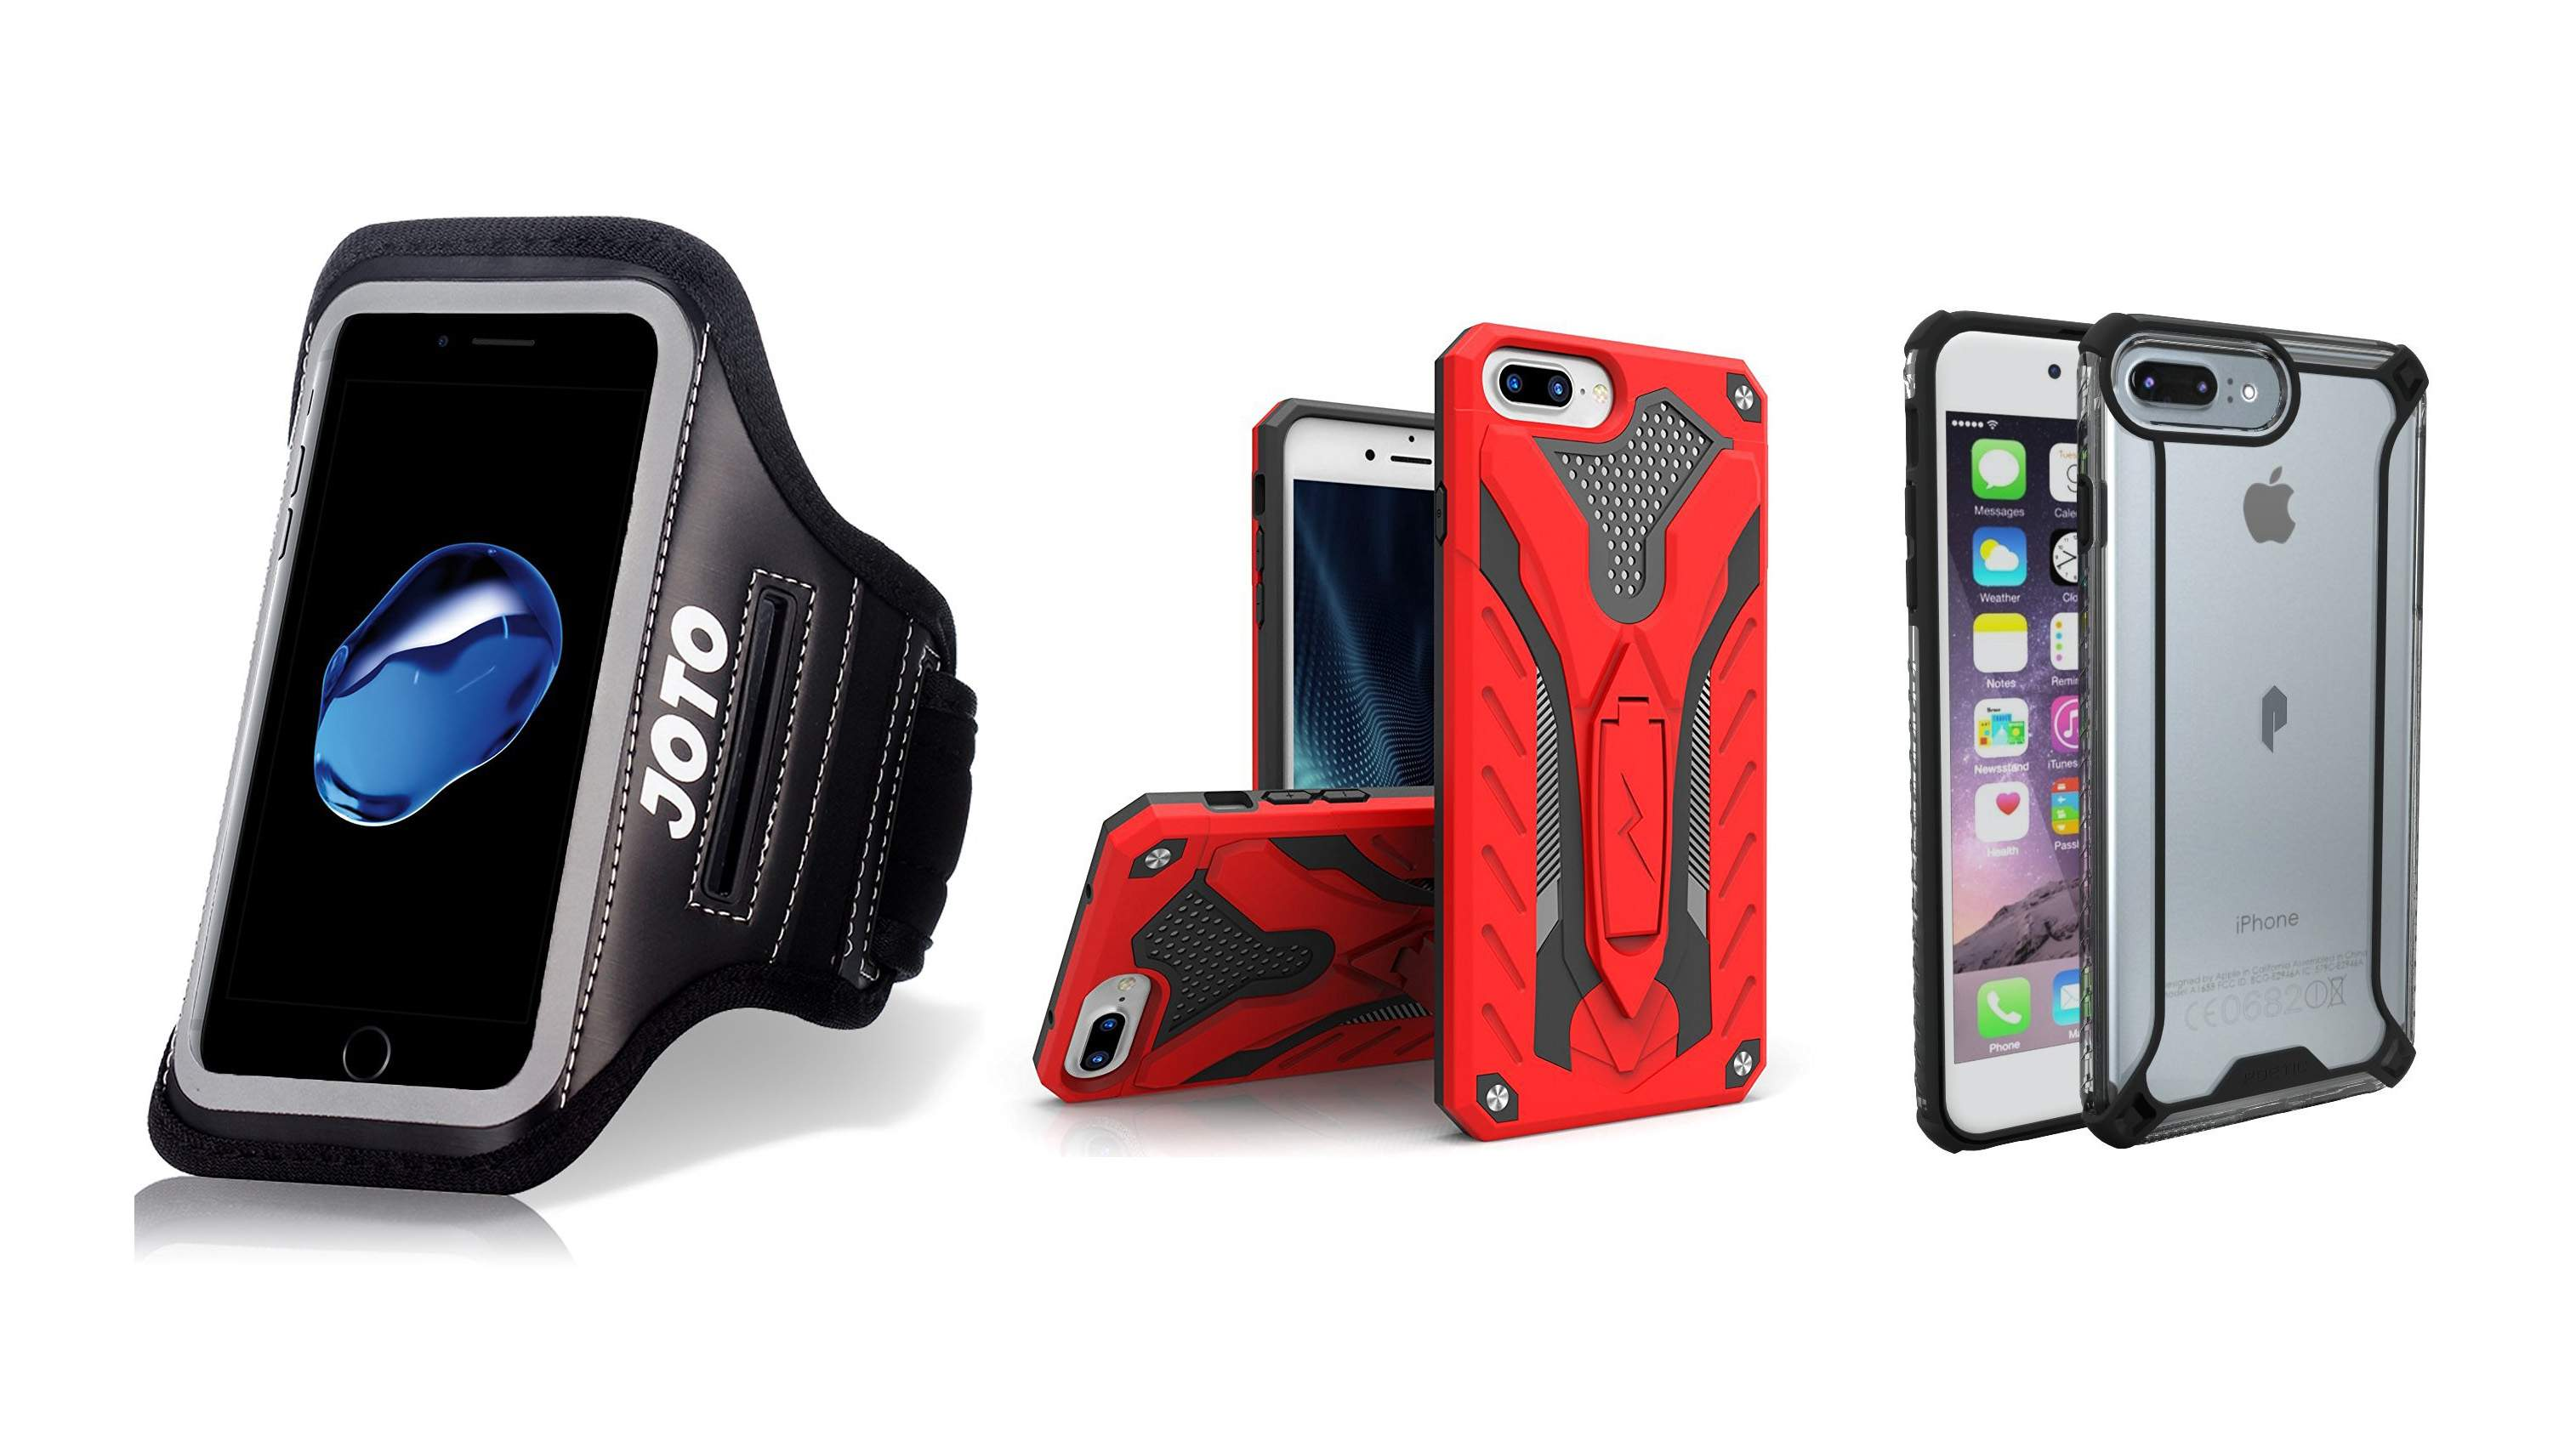 Phone cases are inexpensive and affordable